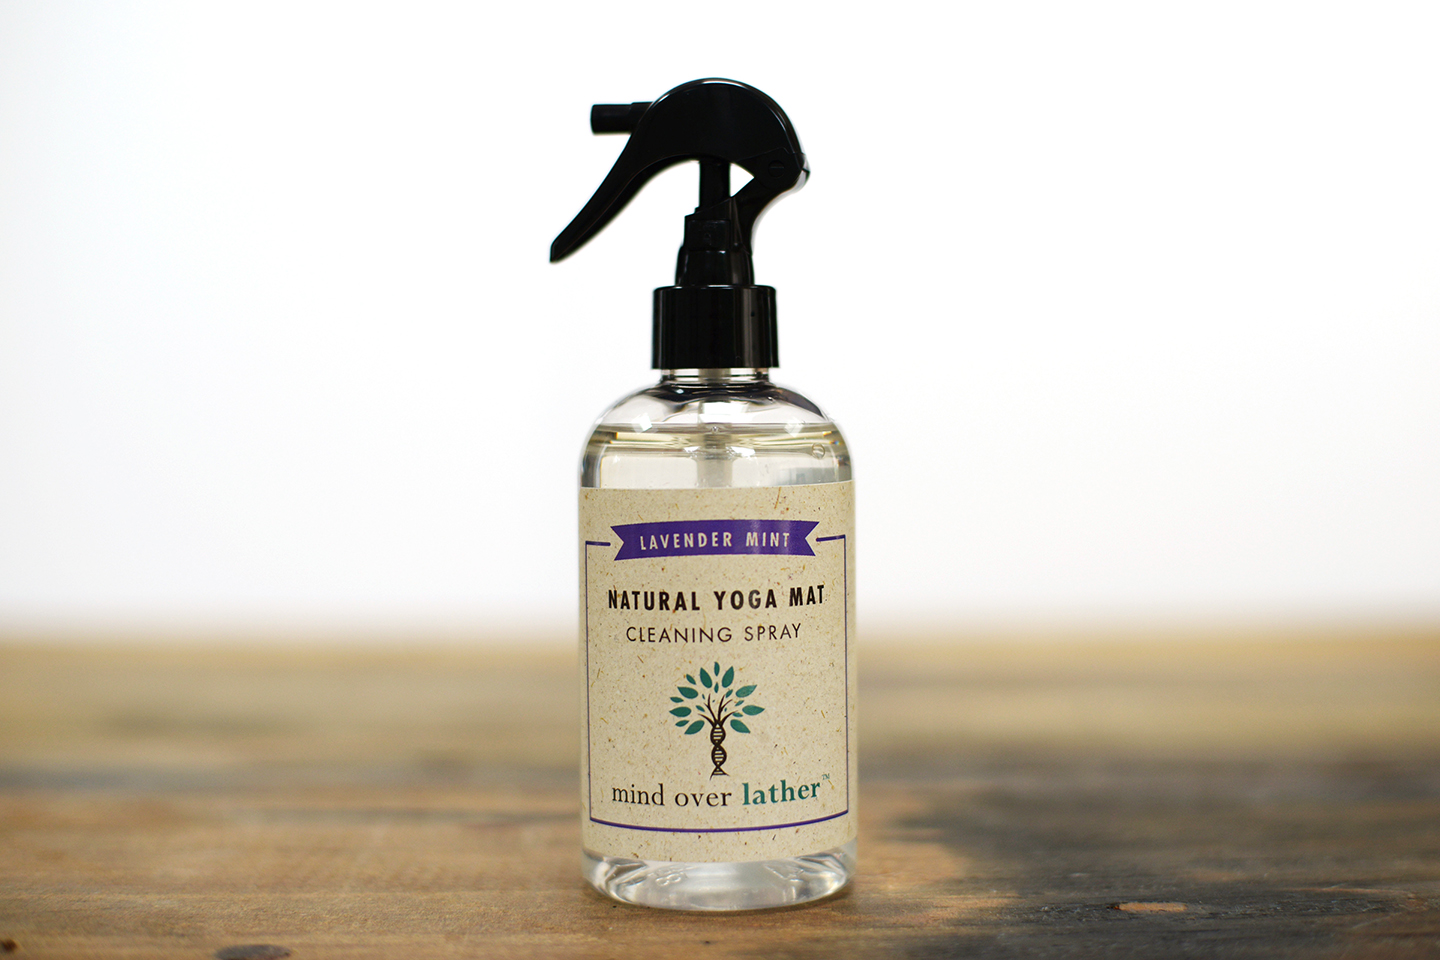 Mind Over Lather Lavender Mint Yoga Mat Cleaning Spray